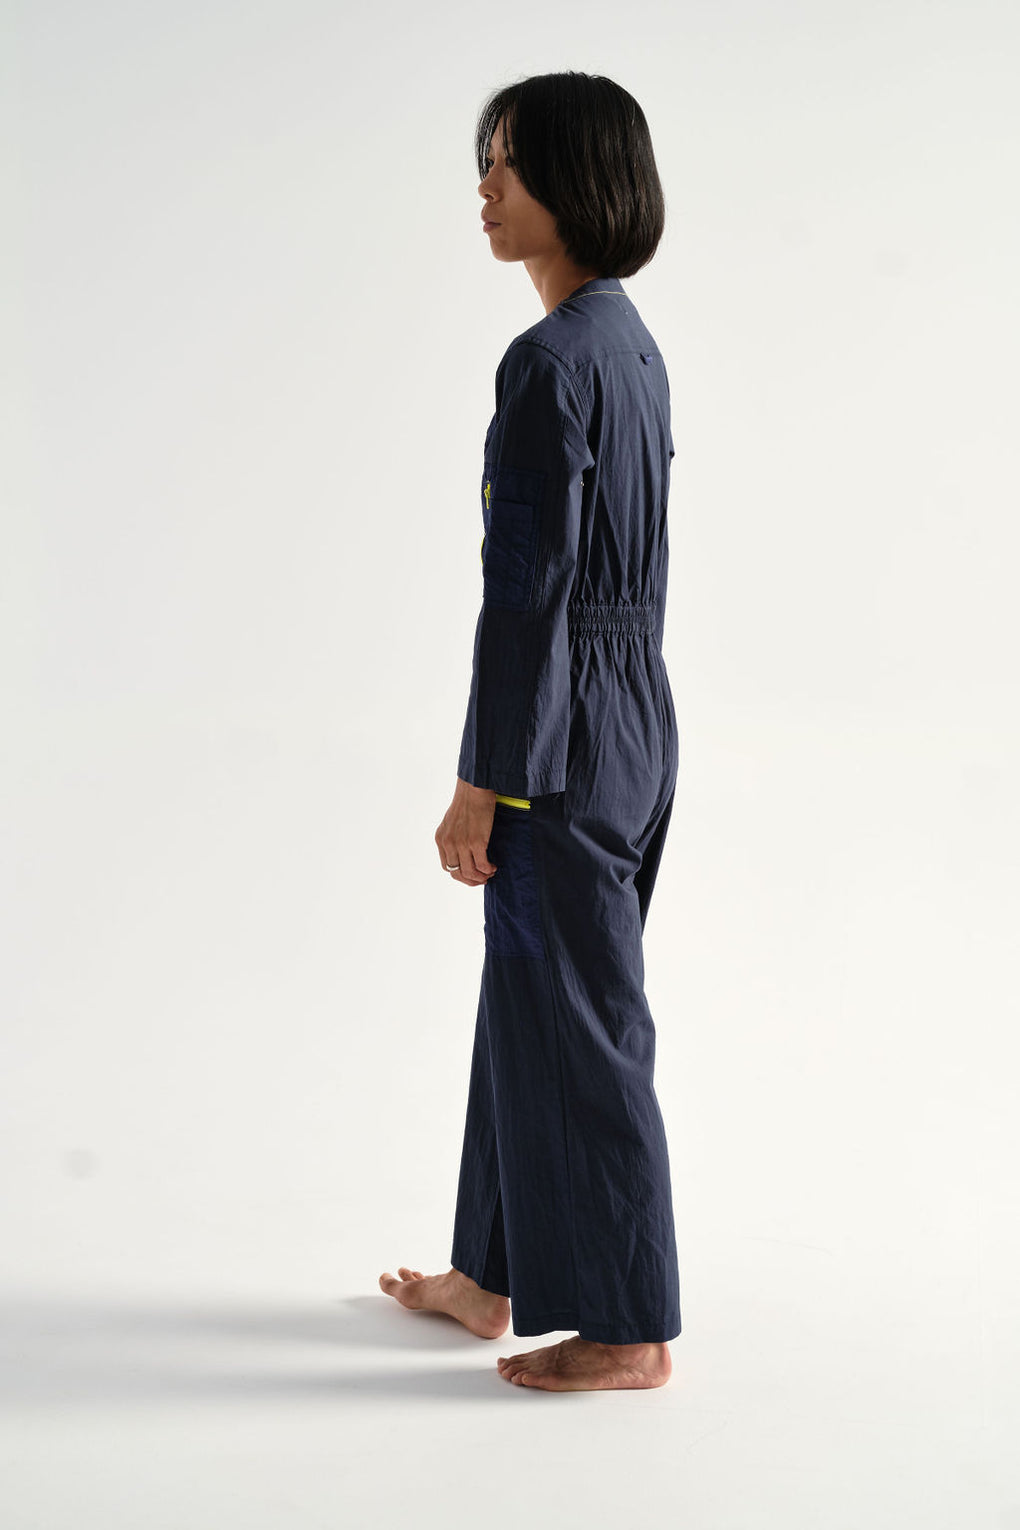 Amelia Flight Suit - Rachel Antonoff - Idun - St. Paul